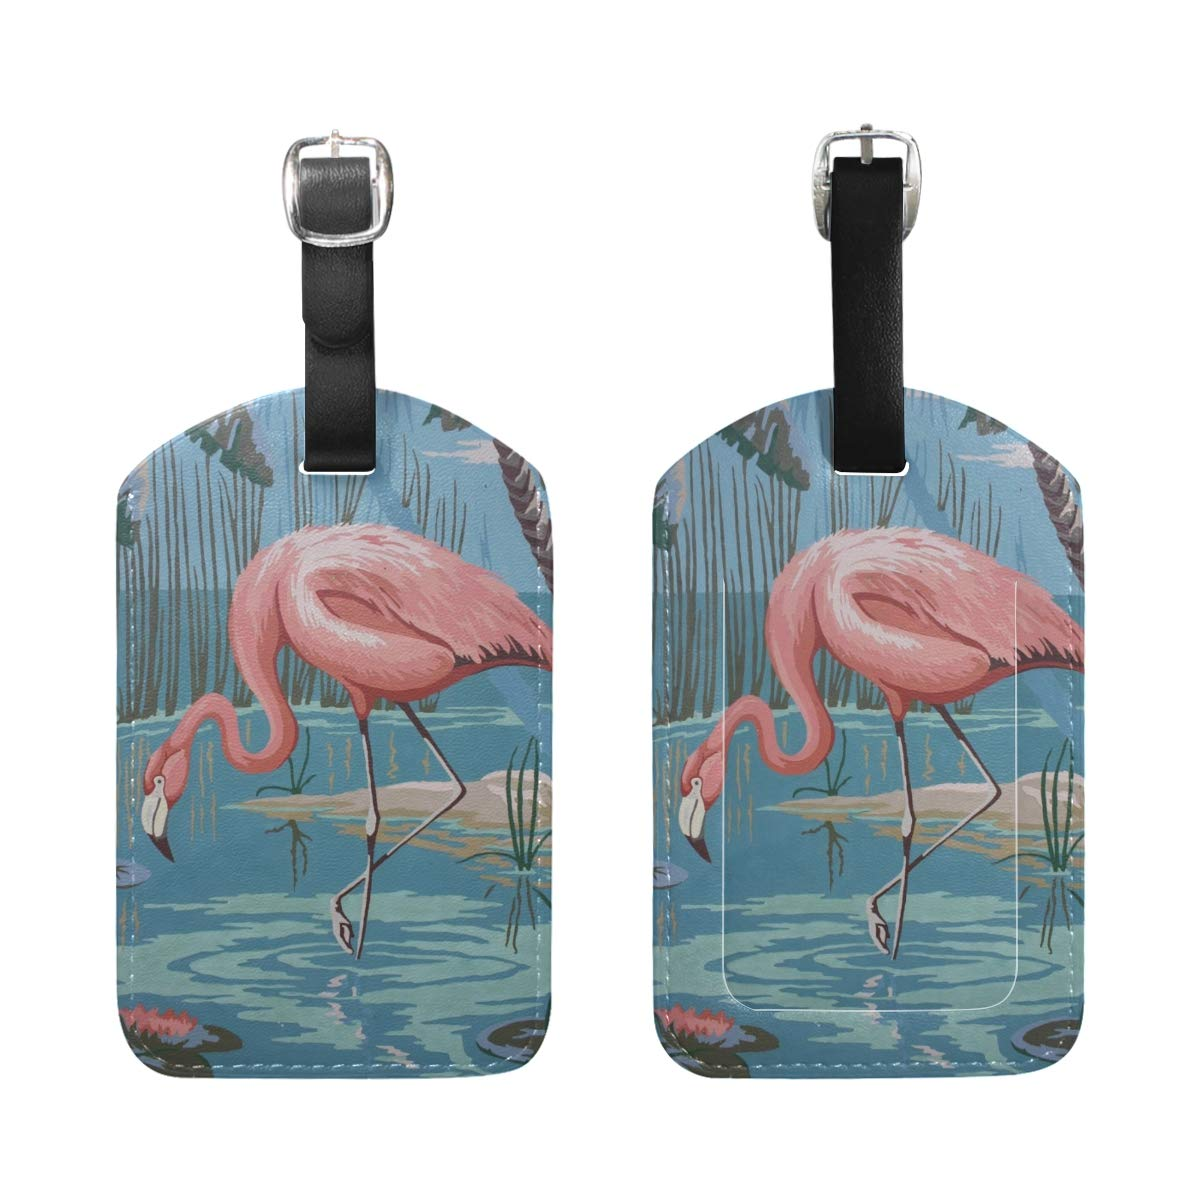 Aibileen Tropical Flamingo Leather Baggage Suitcase Luggage Tags Travel Accessories